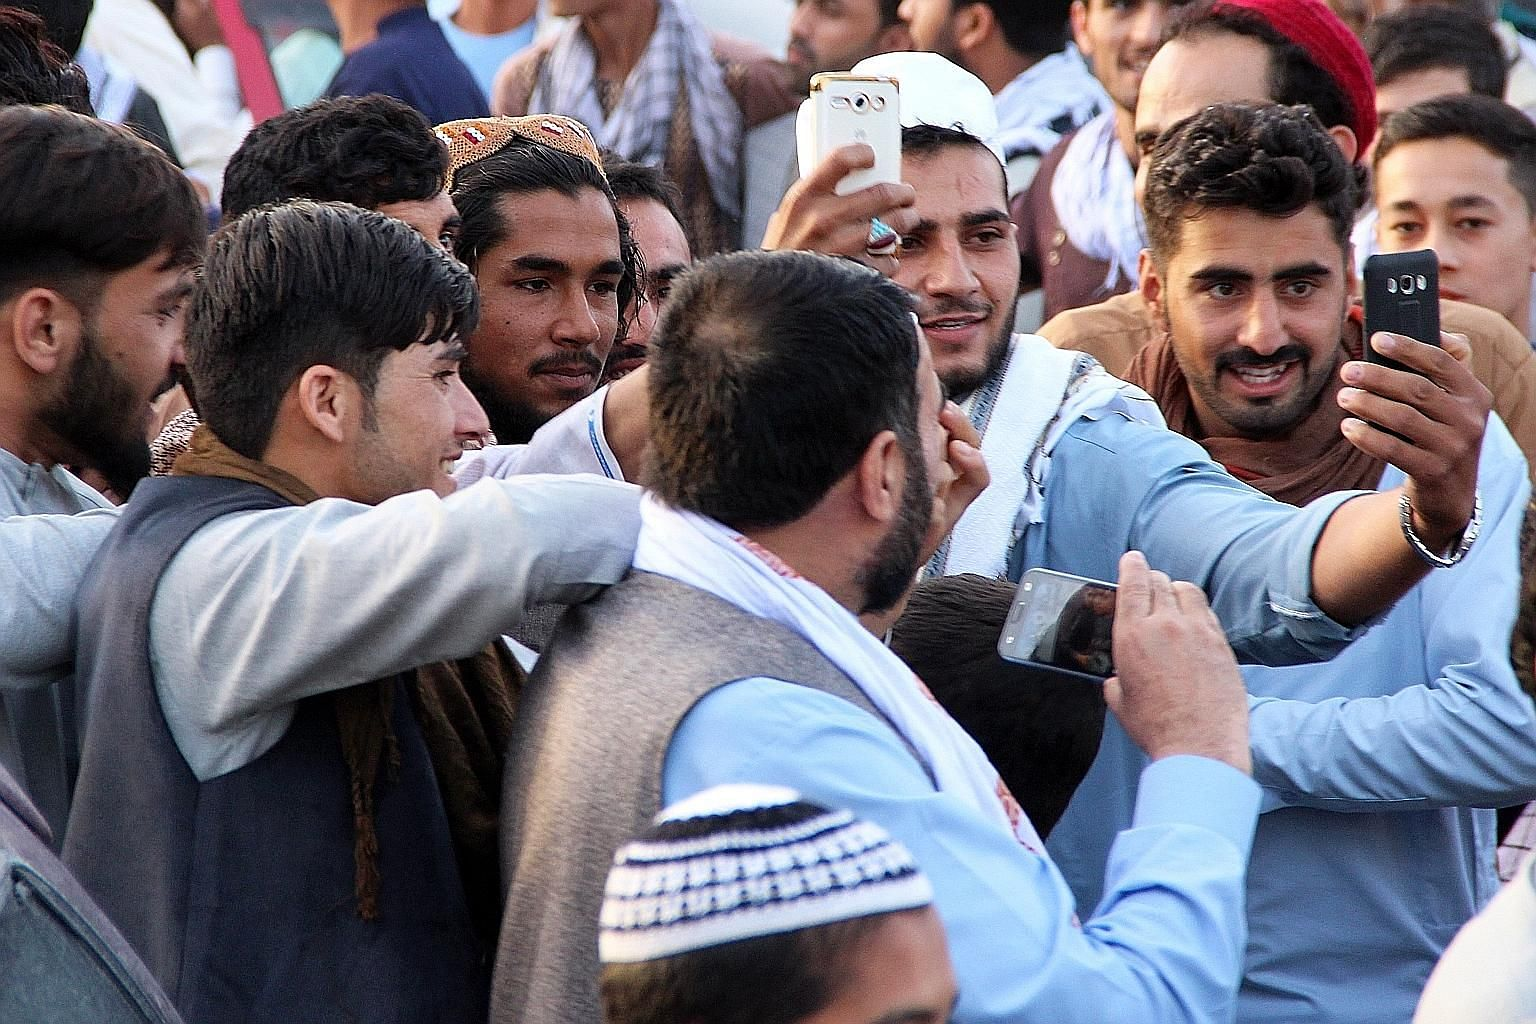 Afghans taking a selfie with a Taleban militant in Kunduz on Friday as the militants announced a three-day ceasefire over the Eid holiday in various parts of Afghanistan.